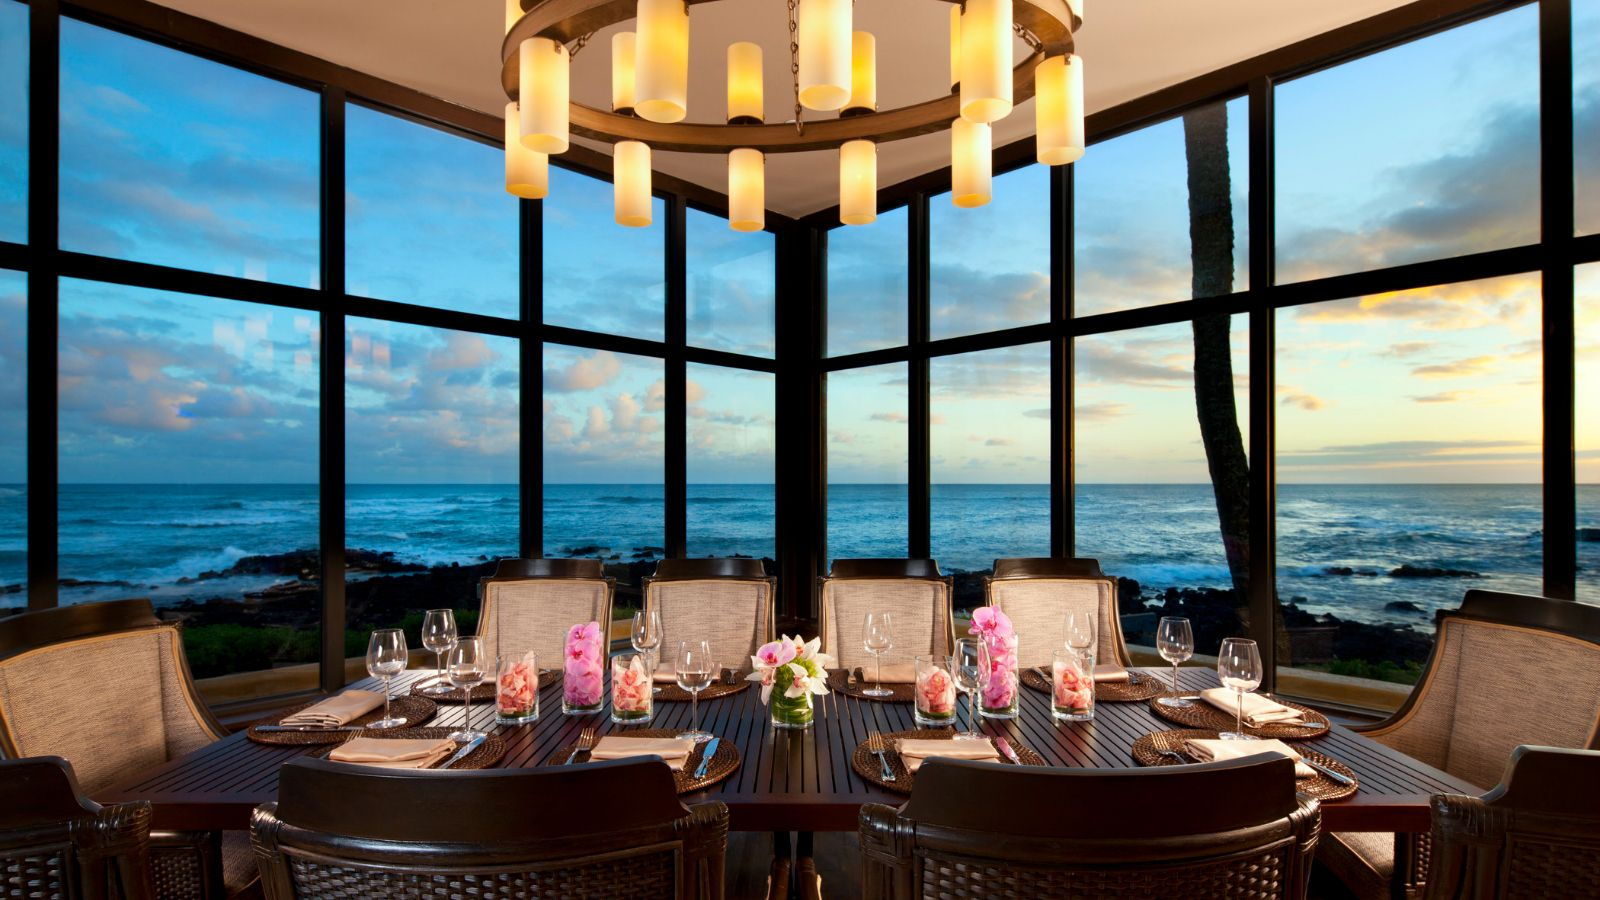 Kauai Resorts - RumFire Private Dining Room